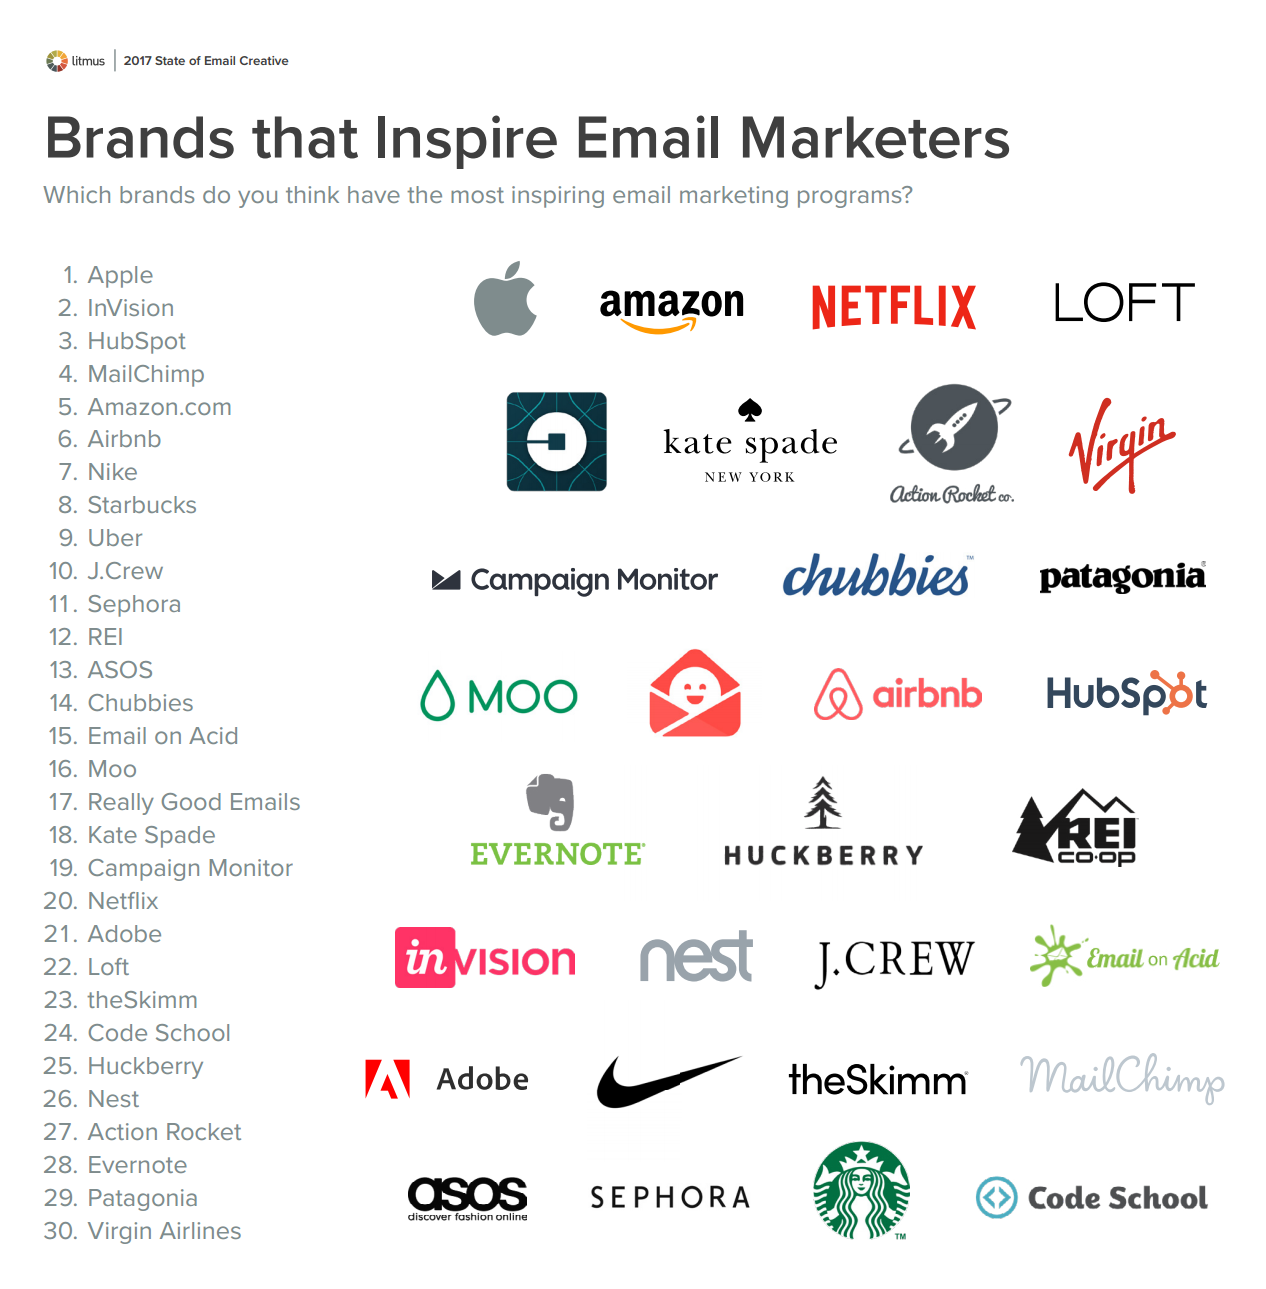 The Brands with the Most Inspiring Email Marketing Programs (2017)